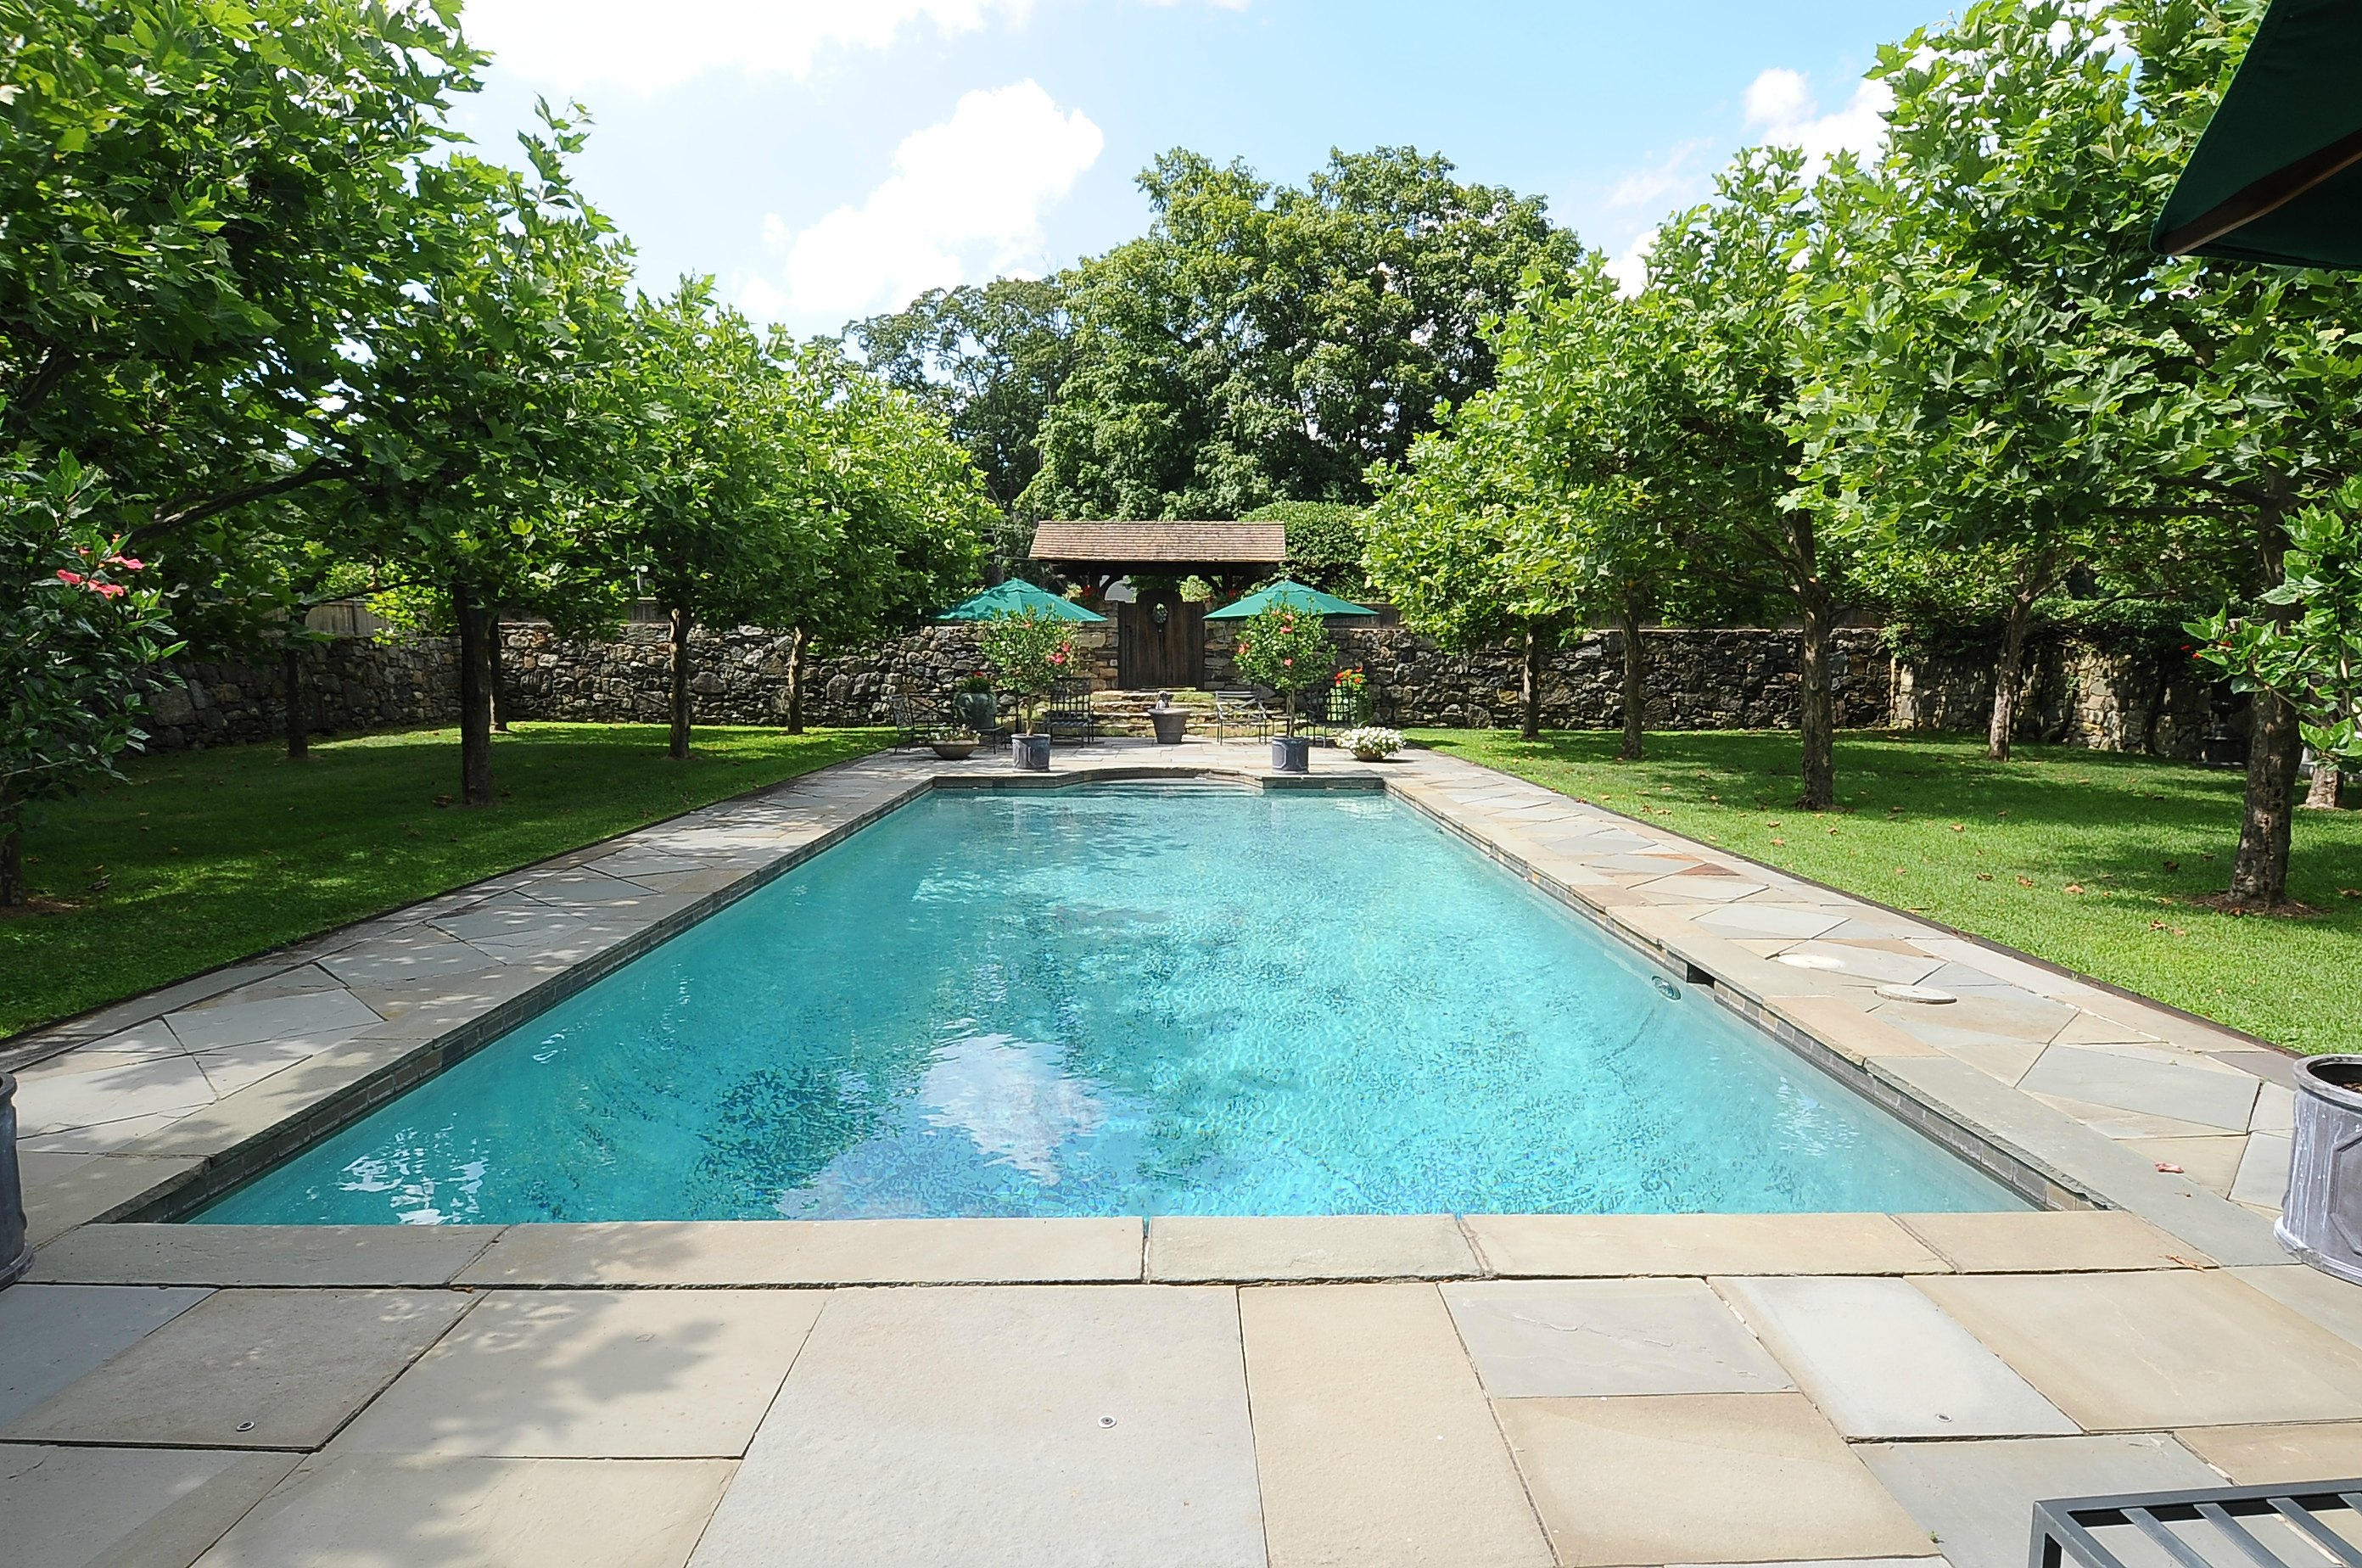 pools_and_pool_houses_luxuryrealestateinmacomjpg luxury homes